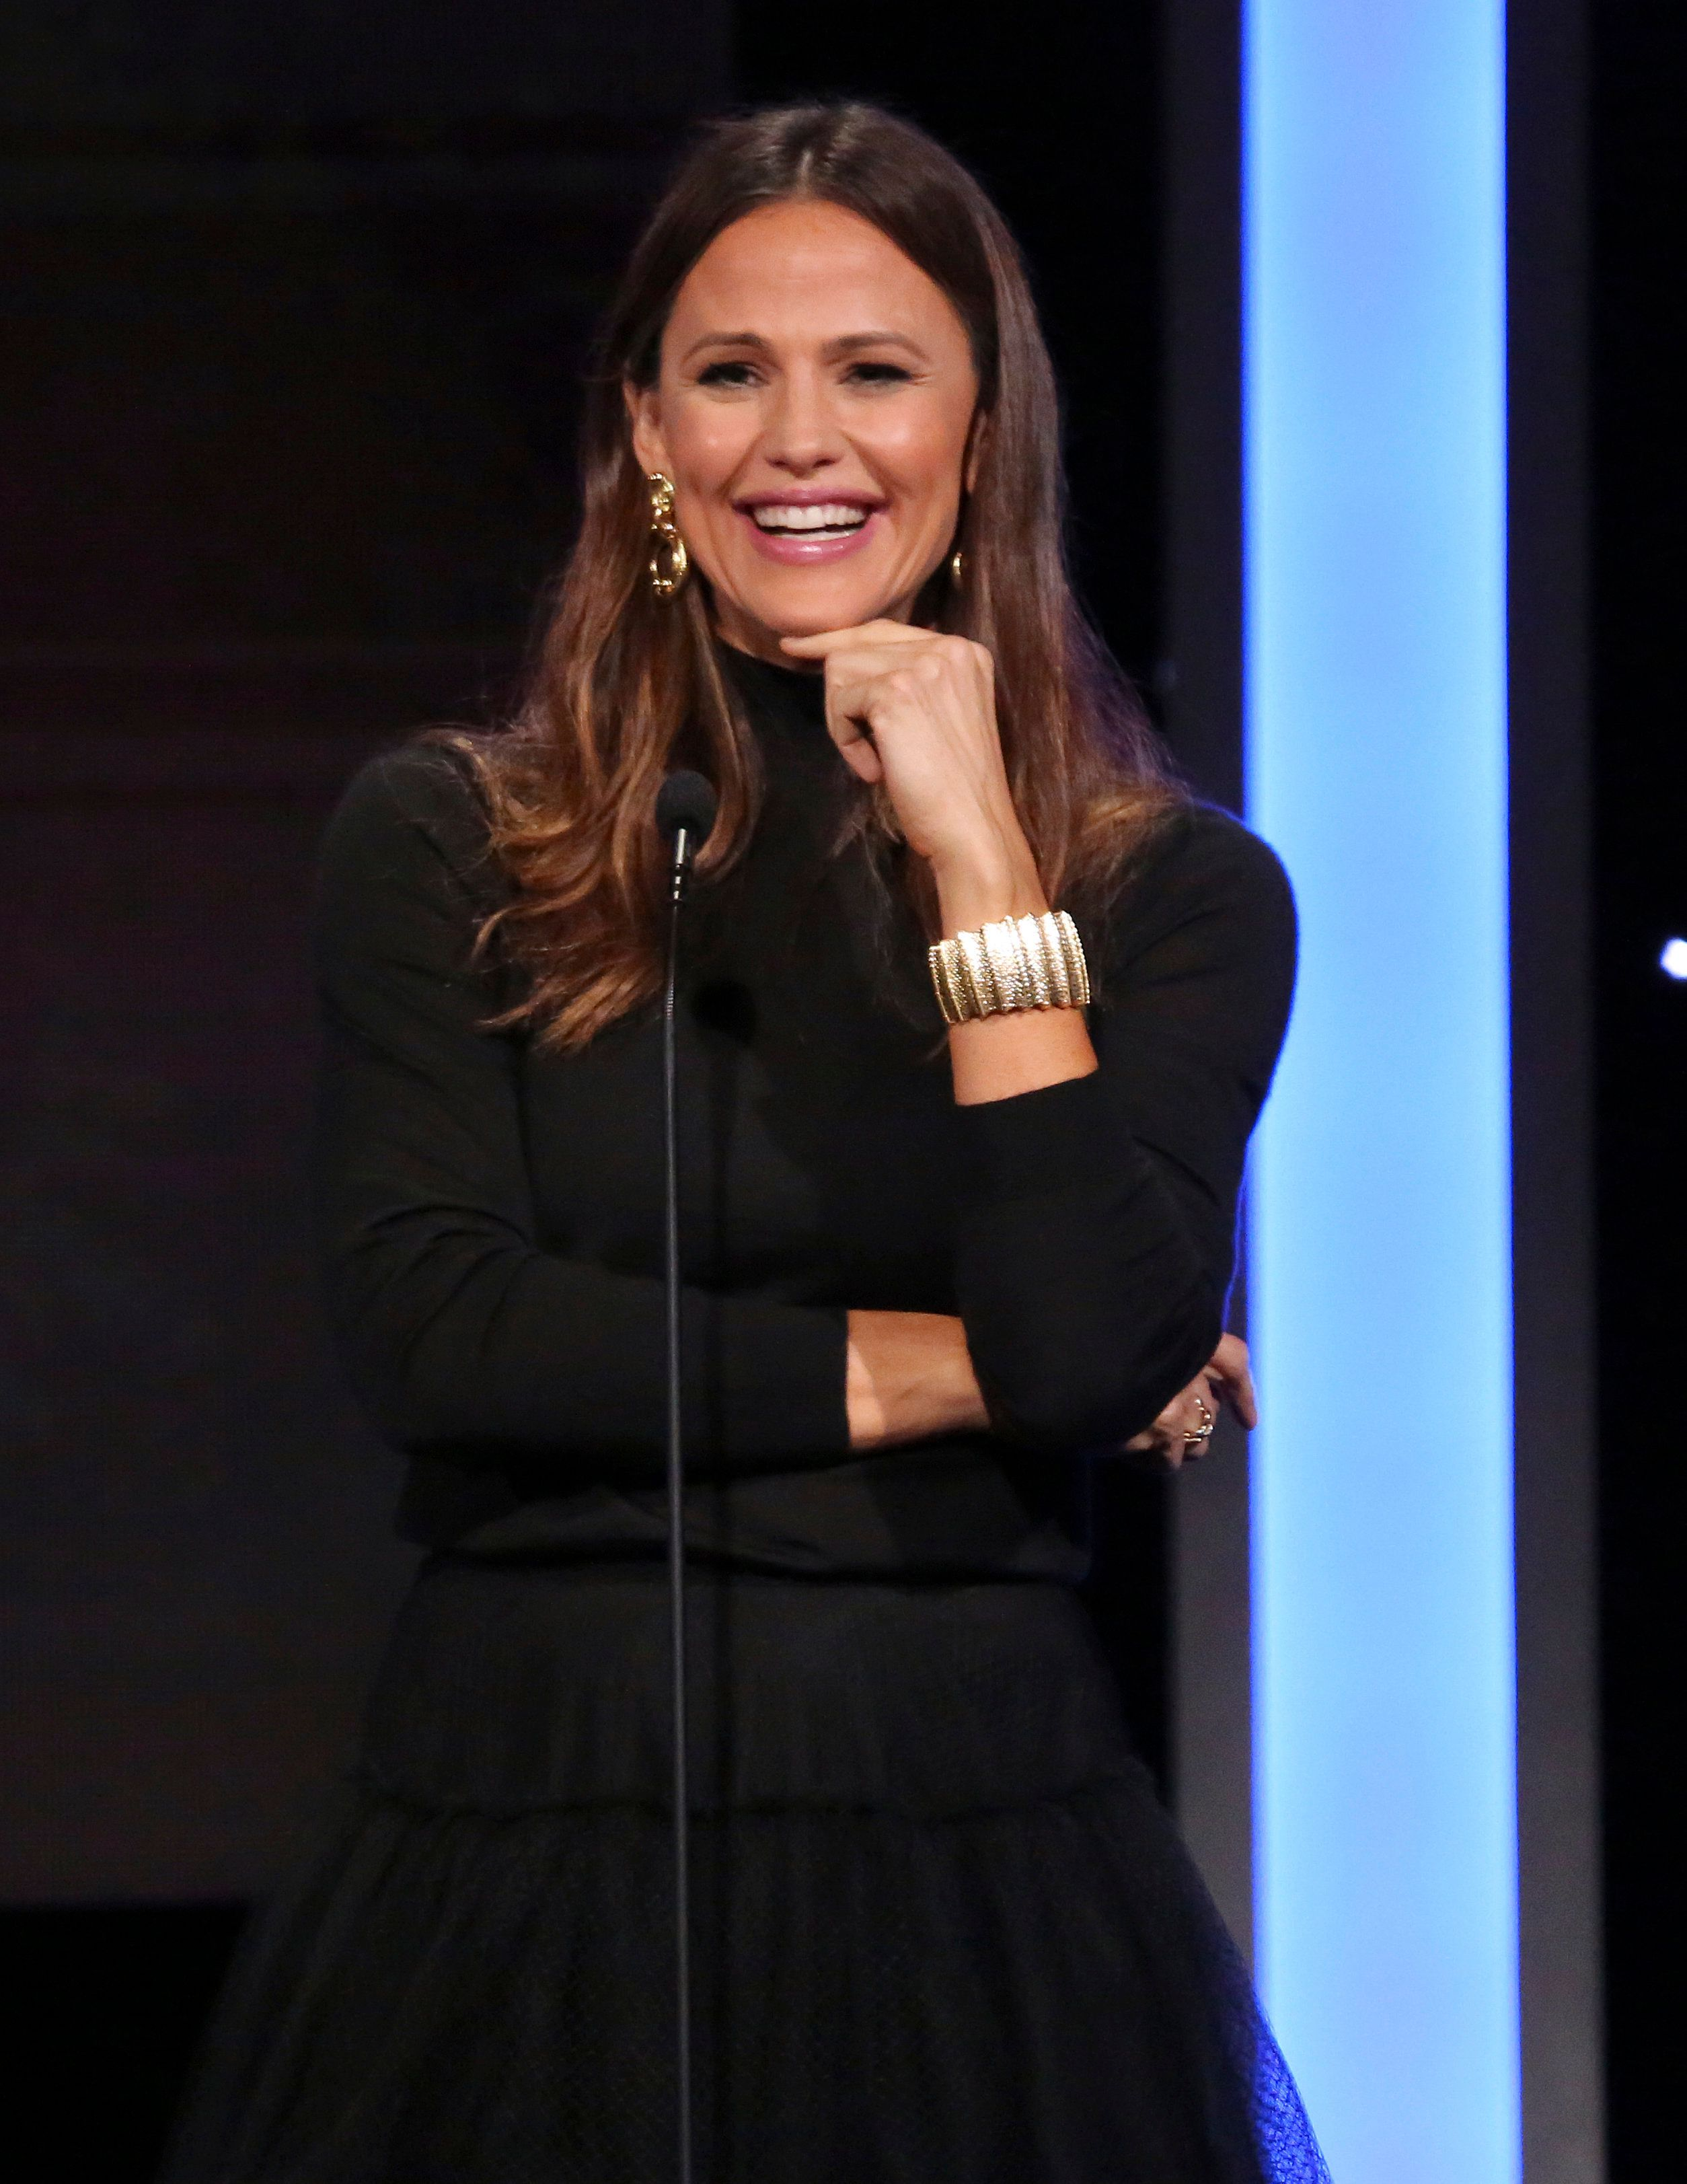 Jennifer Garner speaks at the American Cinematheque Award ceremony honoring Bradley Cooper on Thursday, Nov. 29, 2018, at the Beverly Hilton Hotel in Beverly Hills, Calif. (Photo by Willy Sanjuan/Invision/AP)